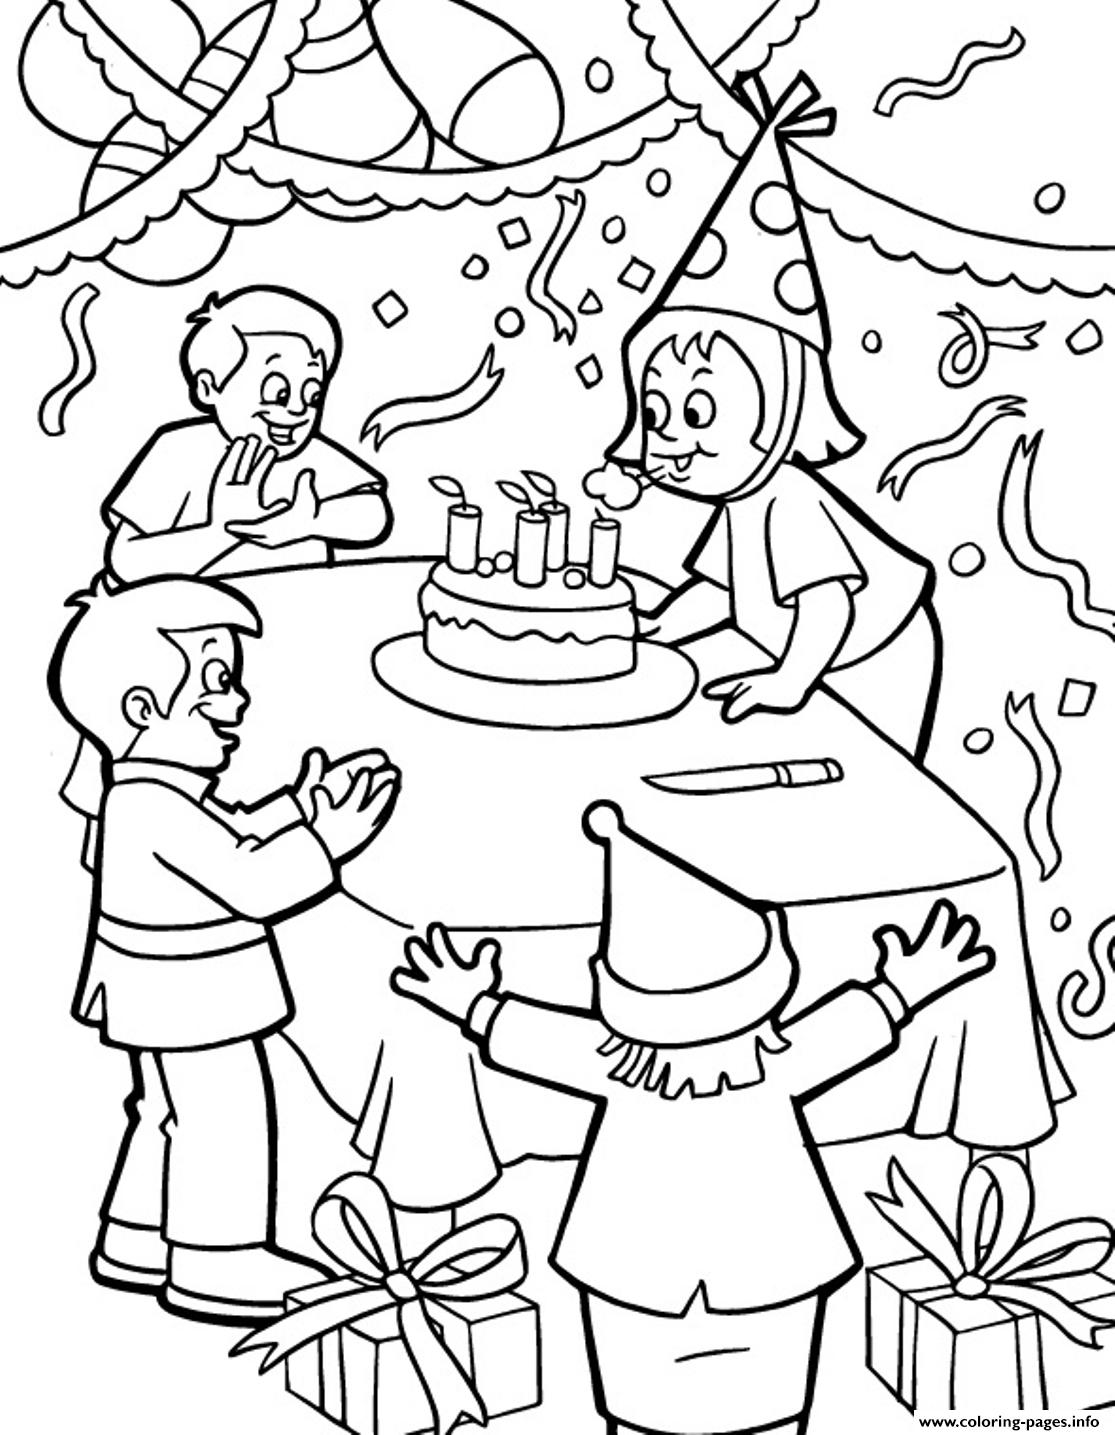 Happy Birthday Coloring Books For Adults Free Sheets Printable ... | 1435x1115